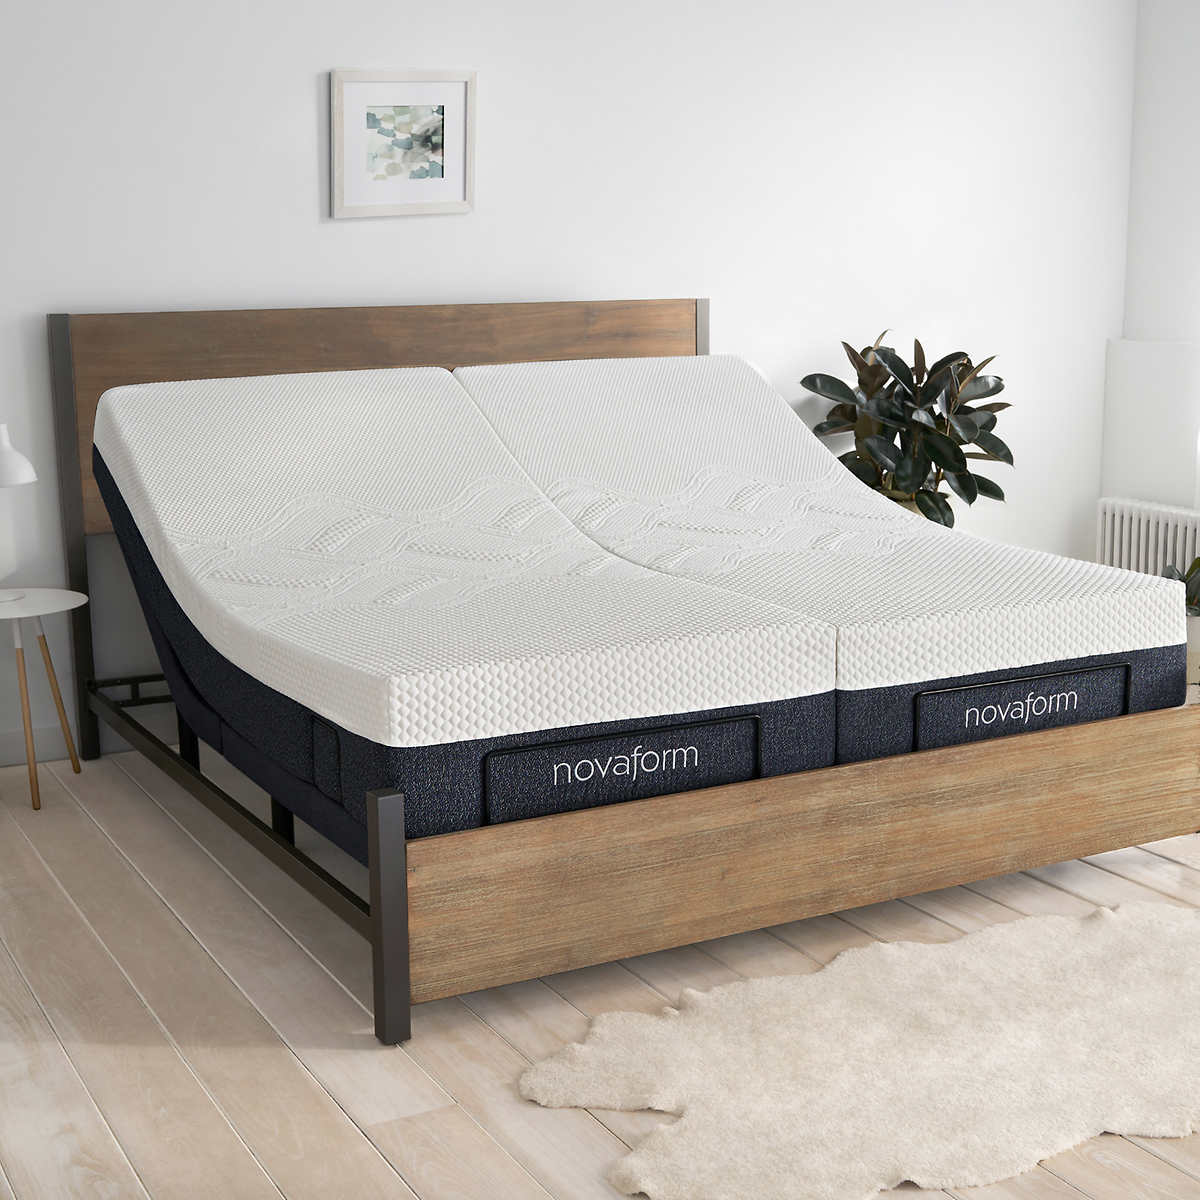 novaform 12 serafina split king gel memory foam adjustable mattress only - Adjustable Queen Bed Frame